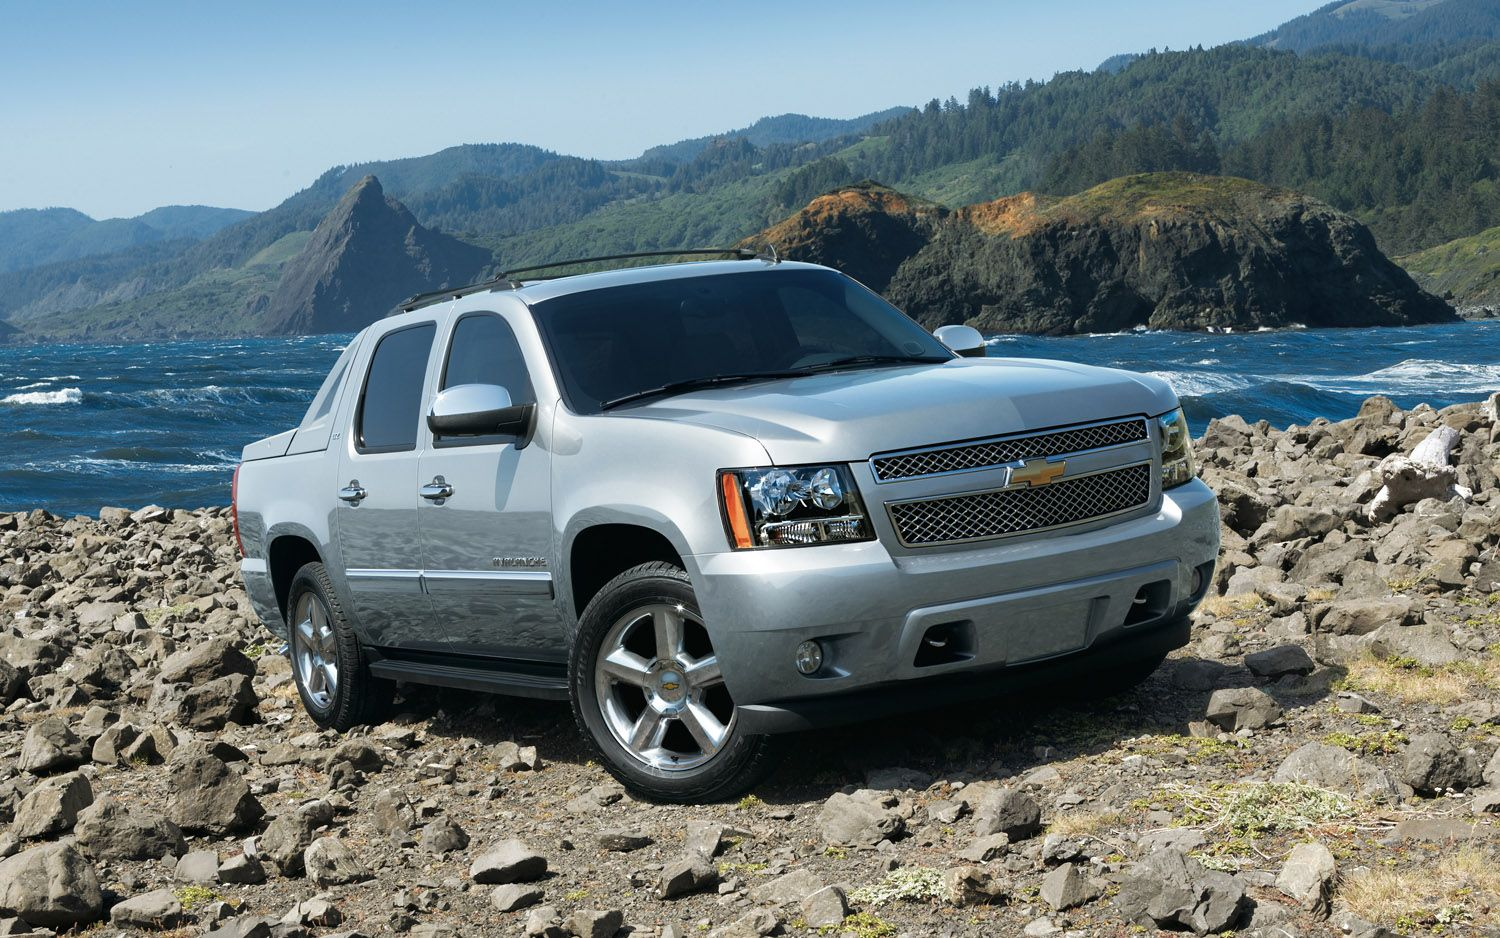 2012 chevrolet avalanche front three quarter photo on january 4